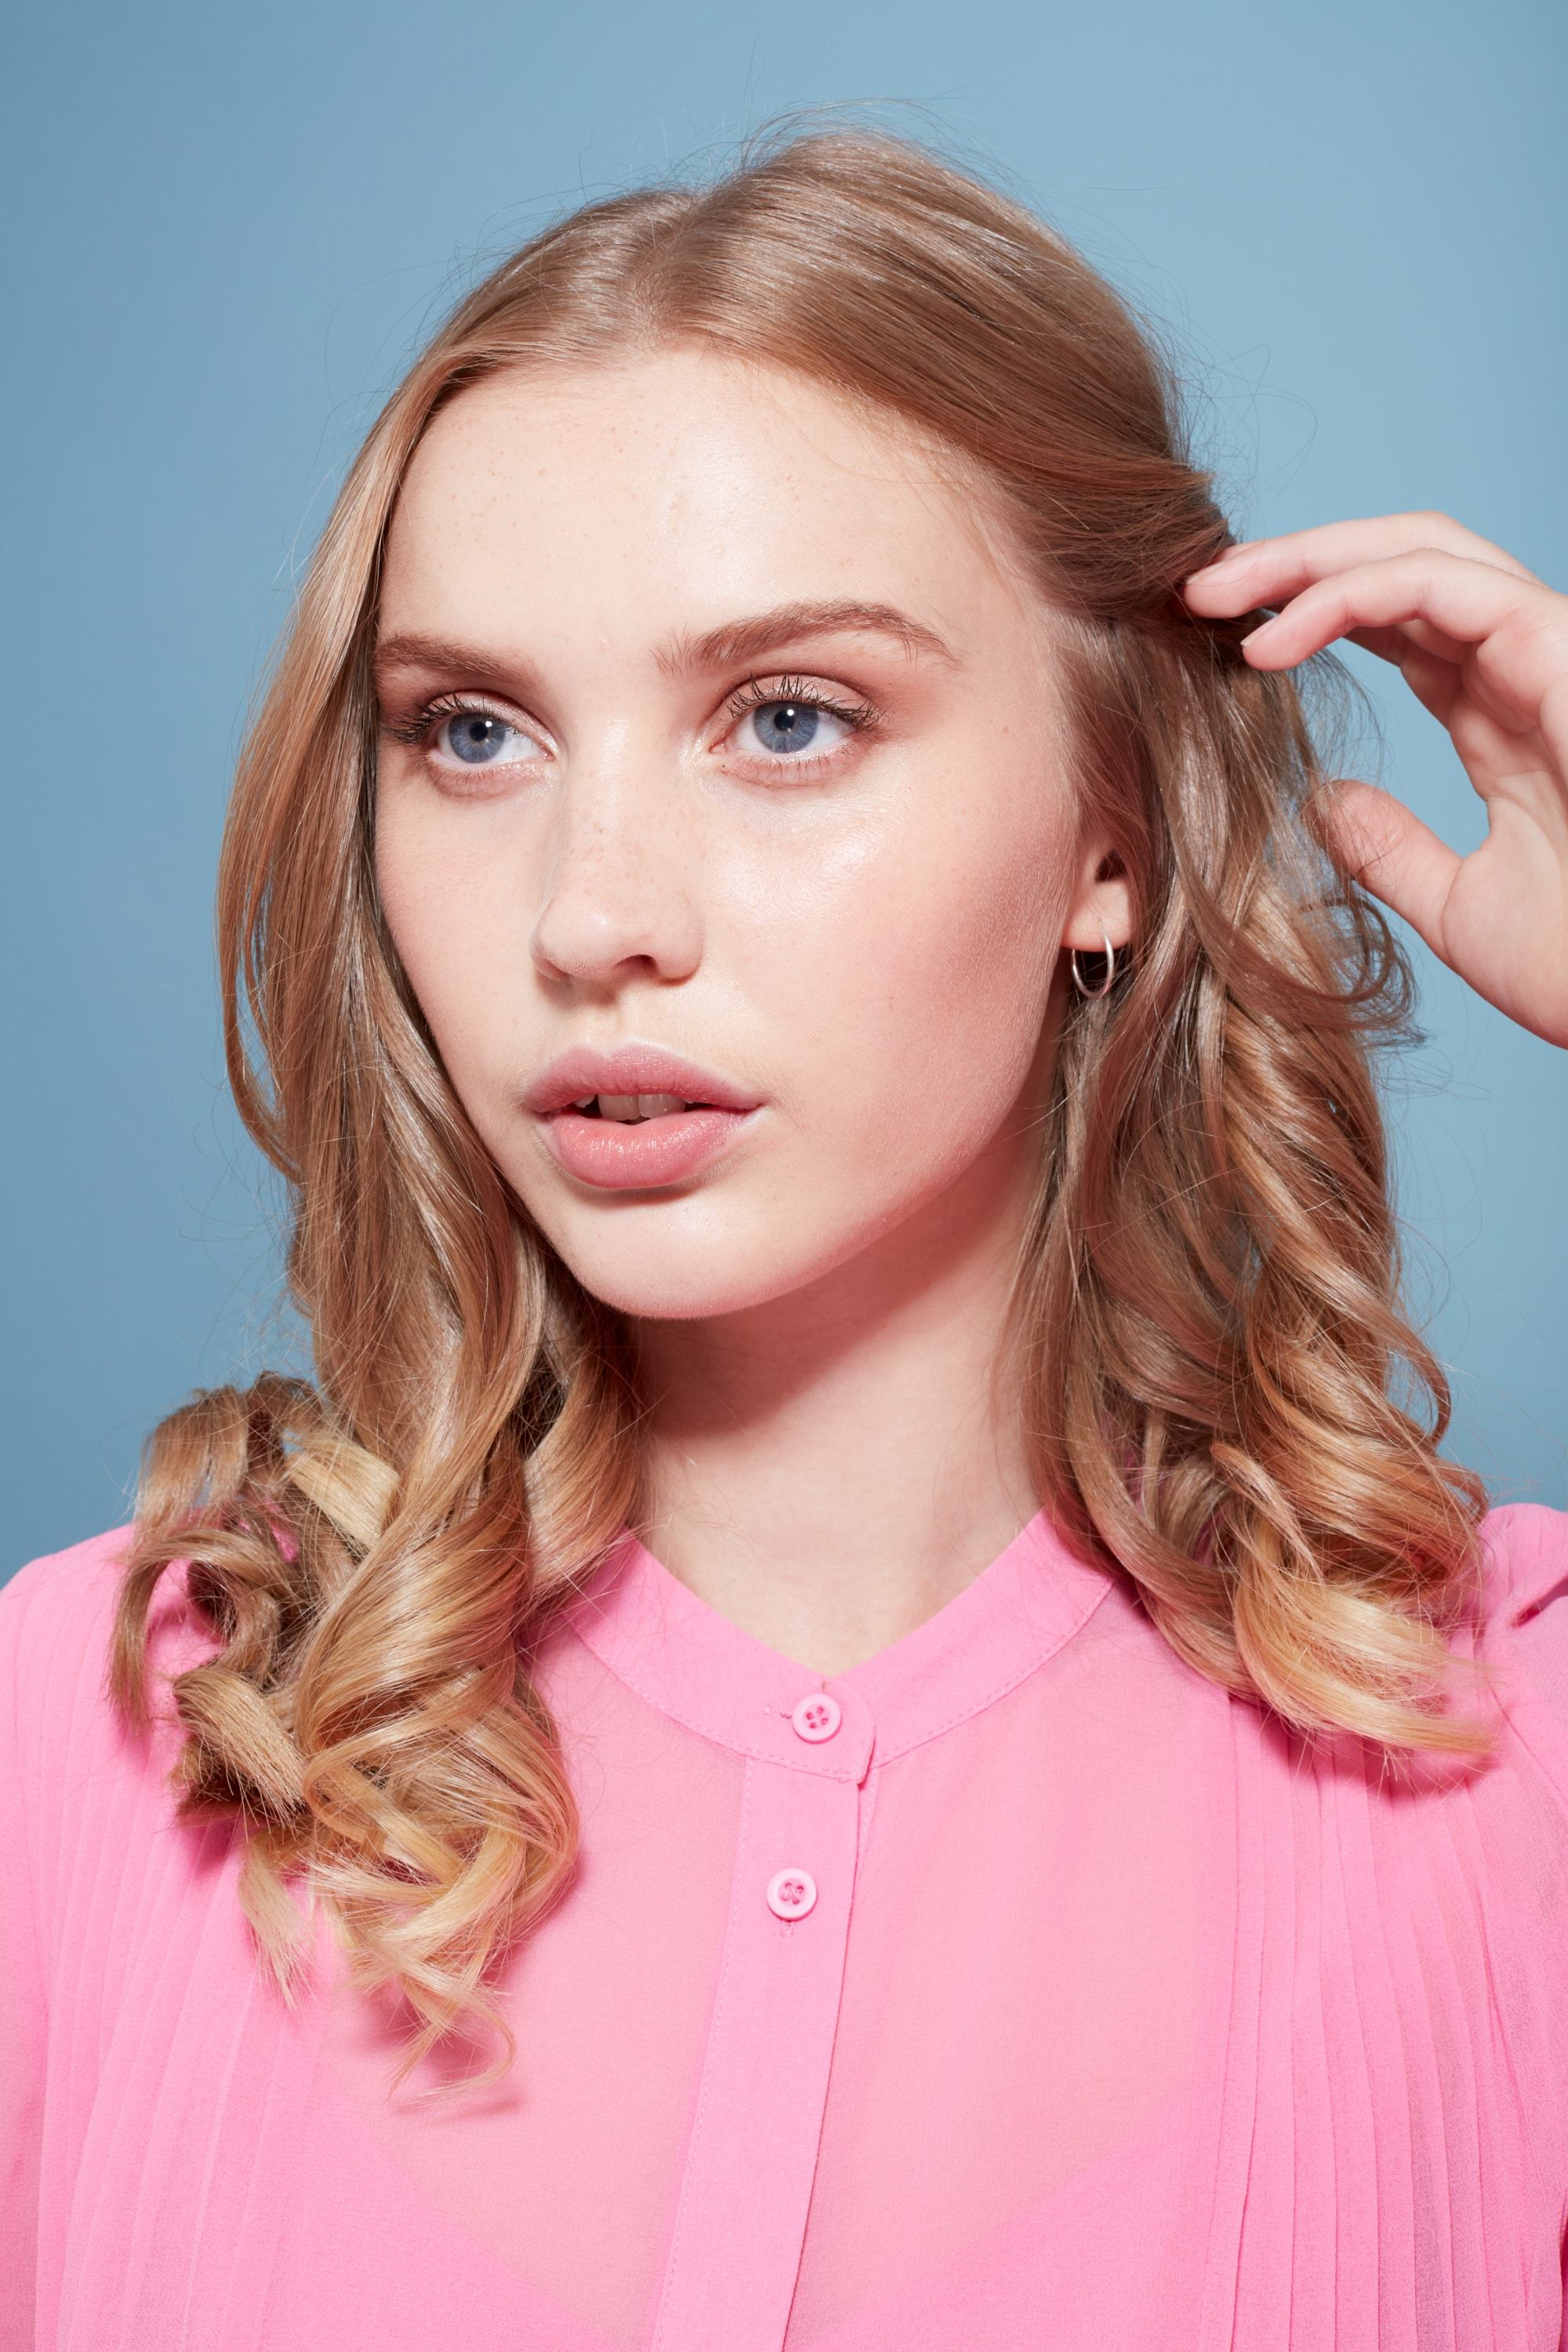 Keratin shampoo: Blonde model touching her medium length curly hair wearing a pink blouse.